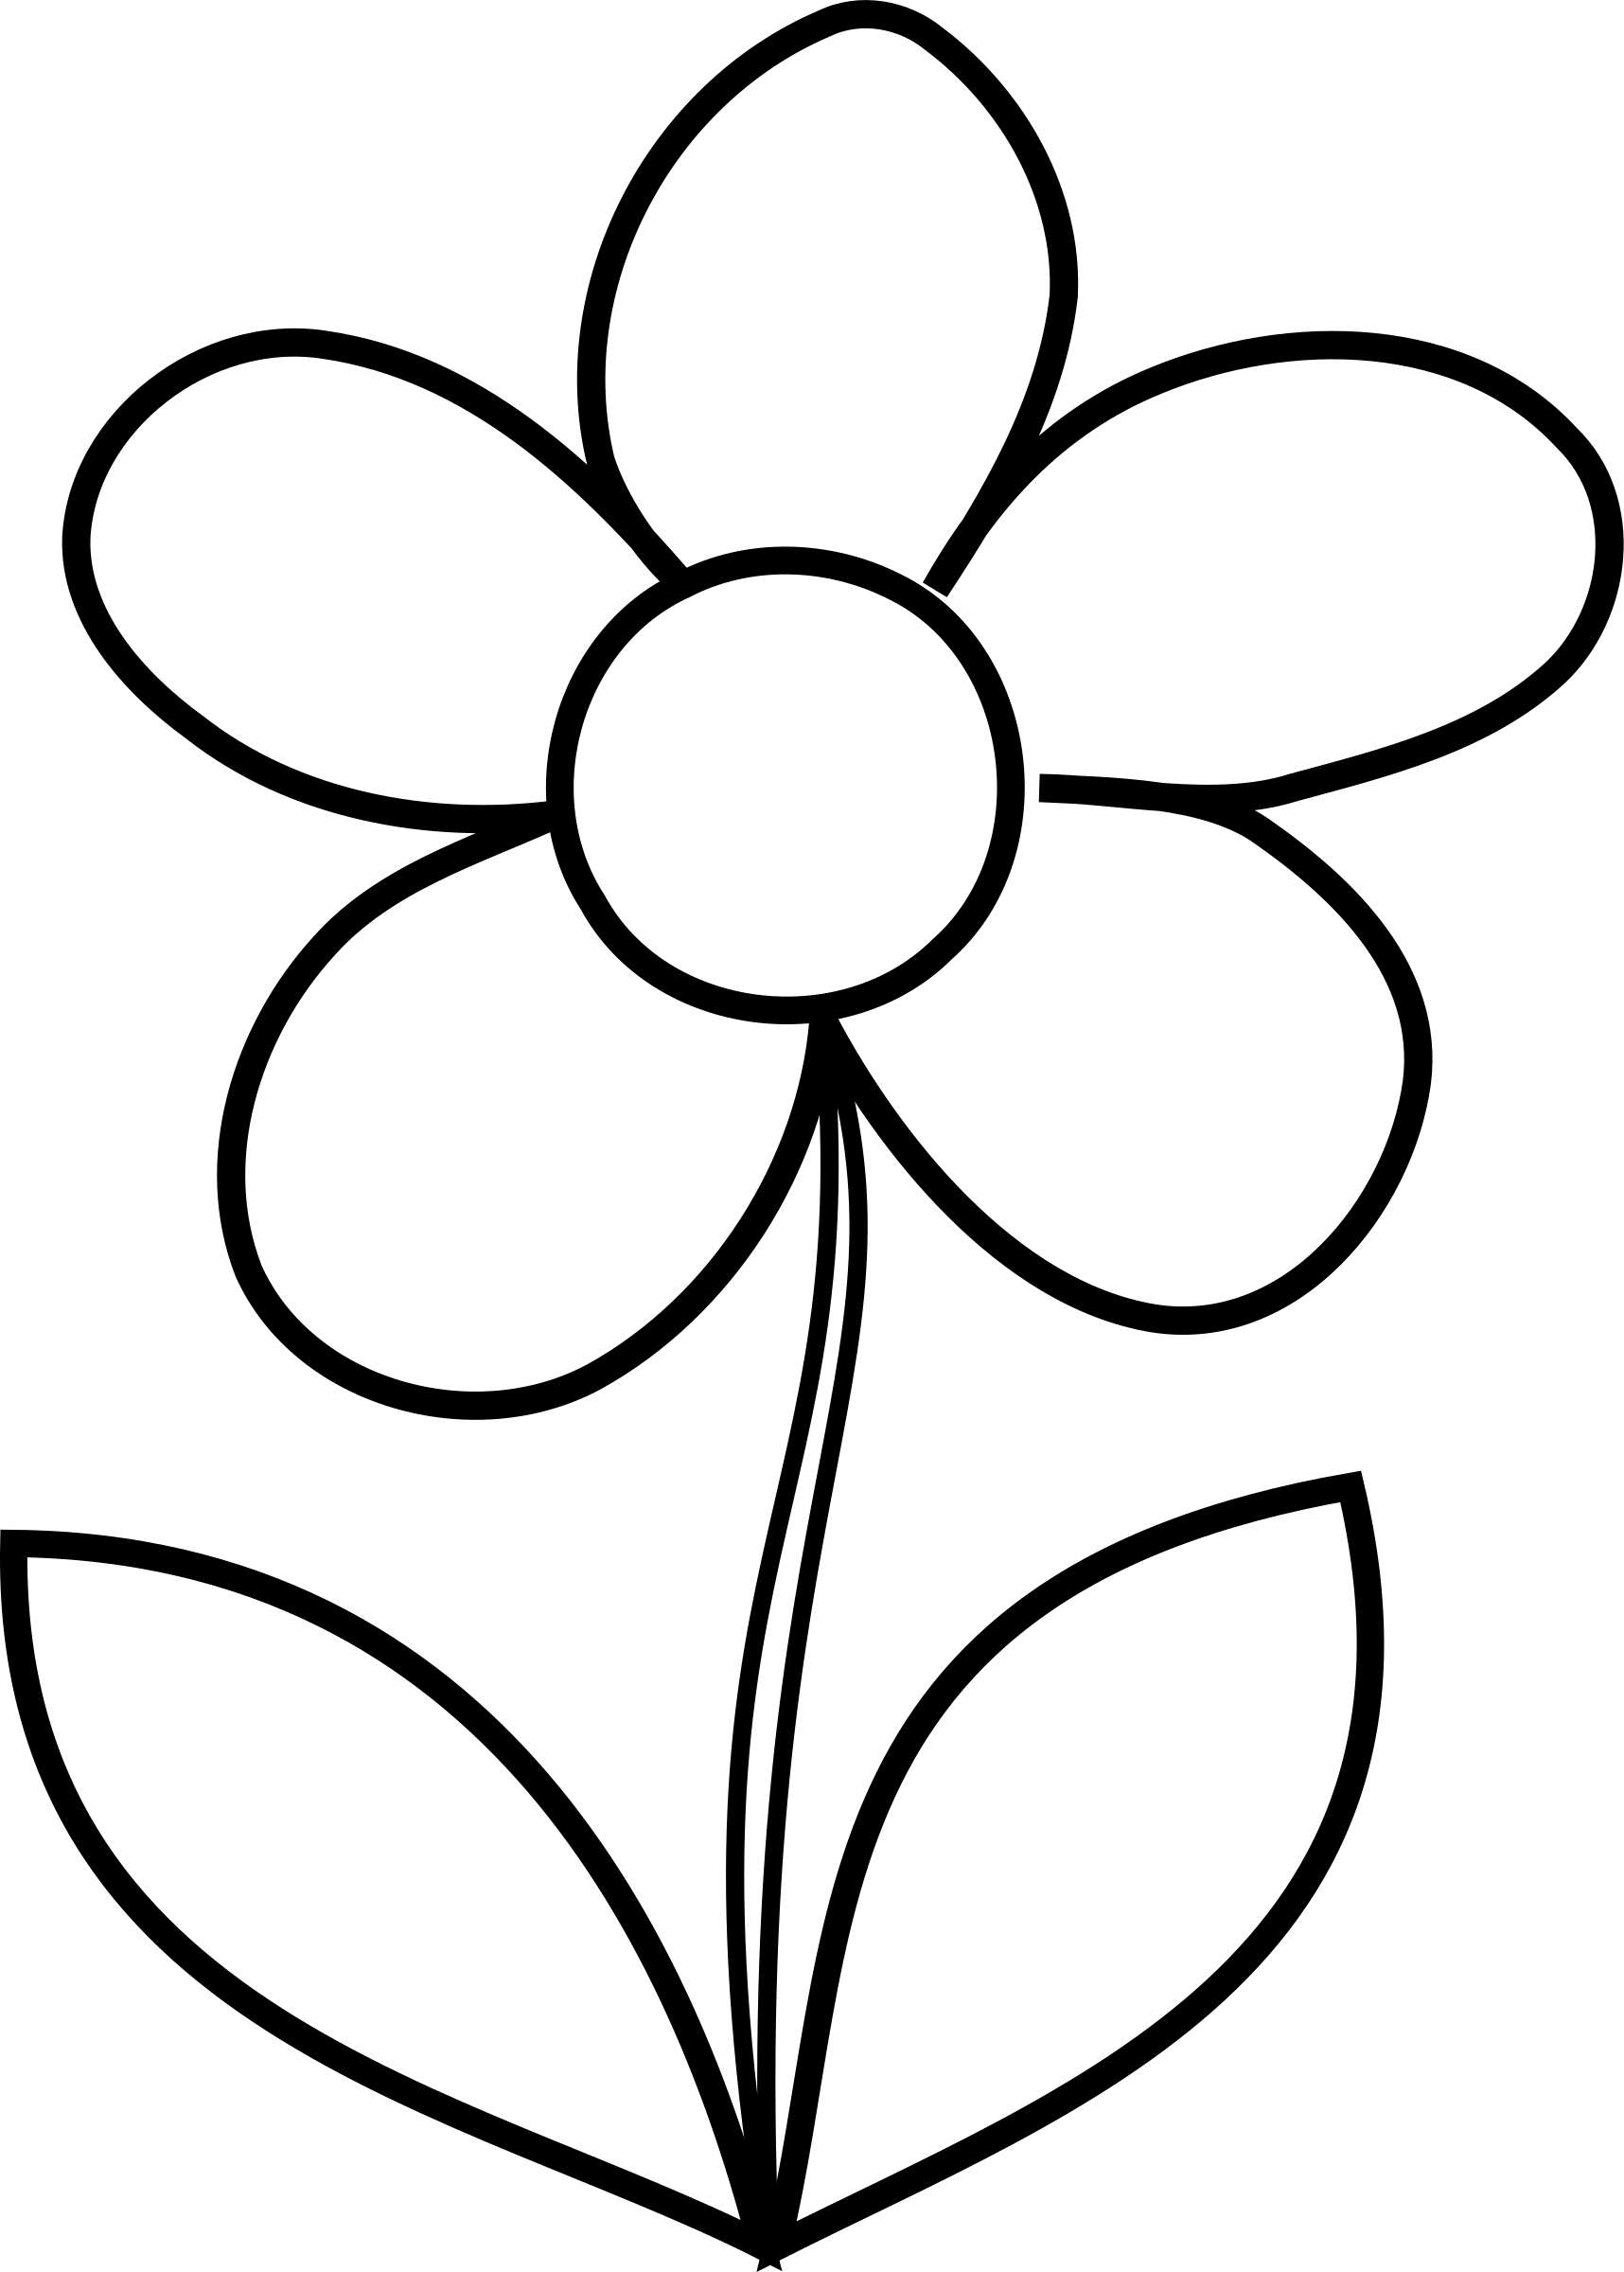 Flowers clipart simple. Flower bw big image